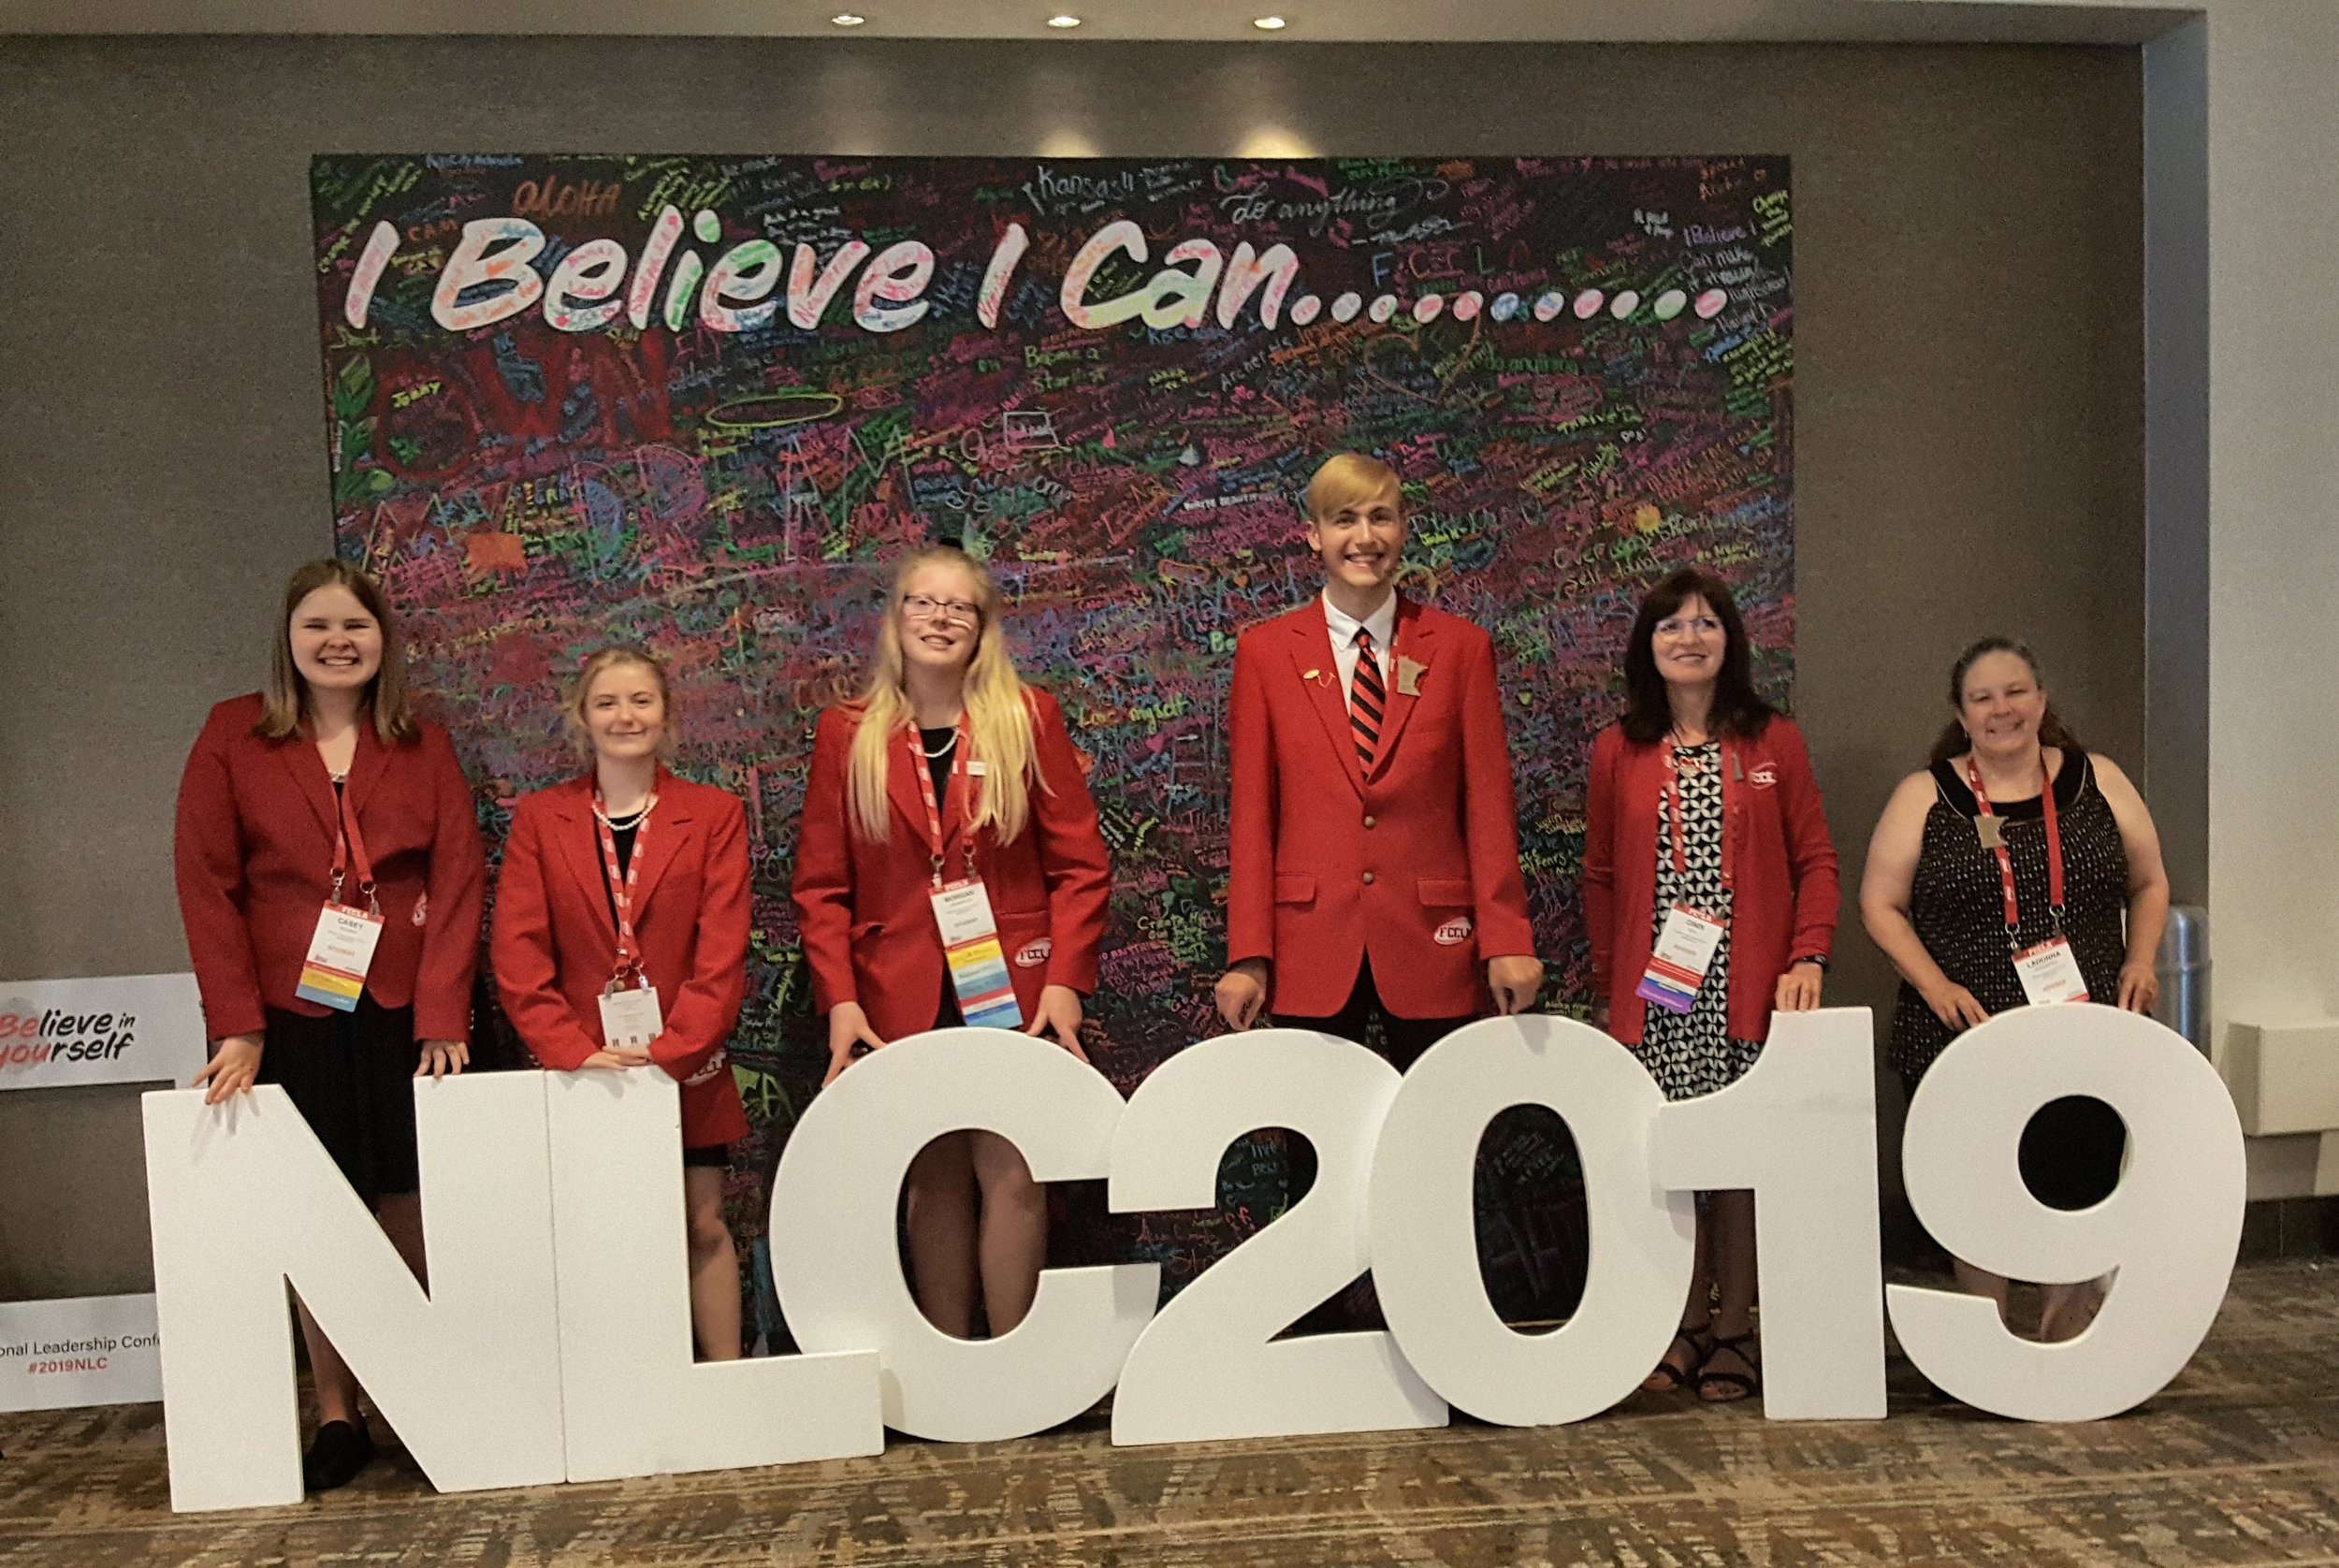 The FCCLA National Leadership Conference 2019 theme is displayed in the background and attending from Wadena-Deer Creek High School, from left: WDC FCCLA members Casey Bounds, Angela LeComte, Morgan Grangruth, and Elliot Doyle, and co-advisors Cindi Koll and LaDonna Norenberg. Courtesy photo.